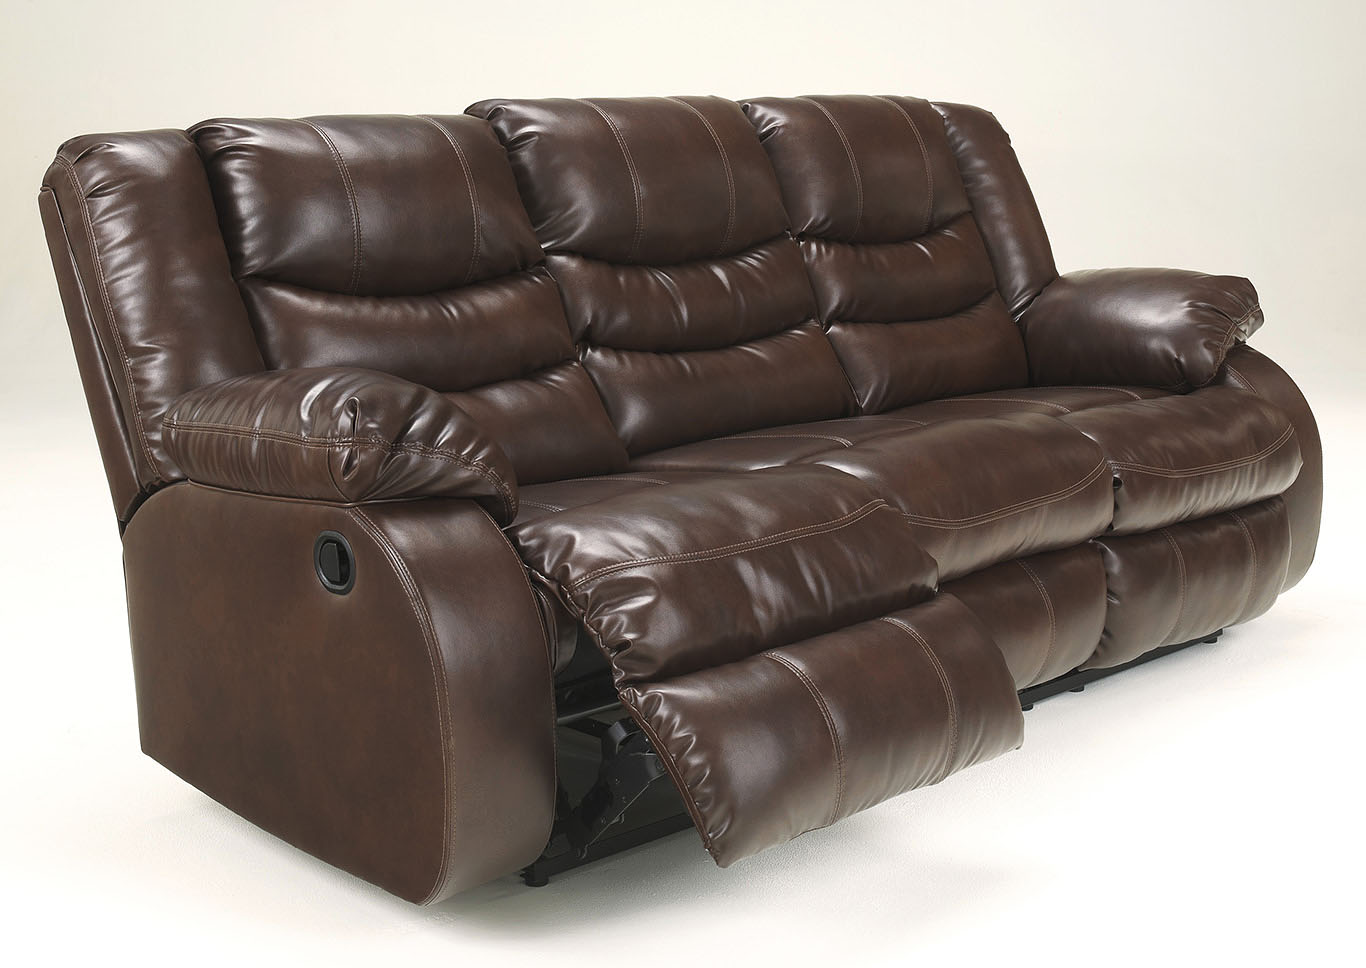 Linebacker DuraBlend Espresso Reclining Sofa,Signature Design by Ashley